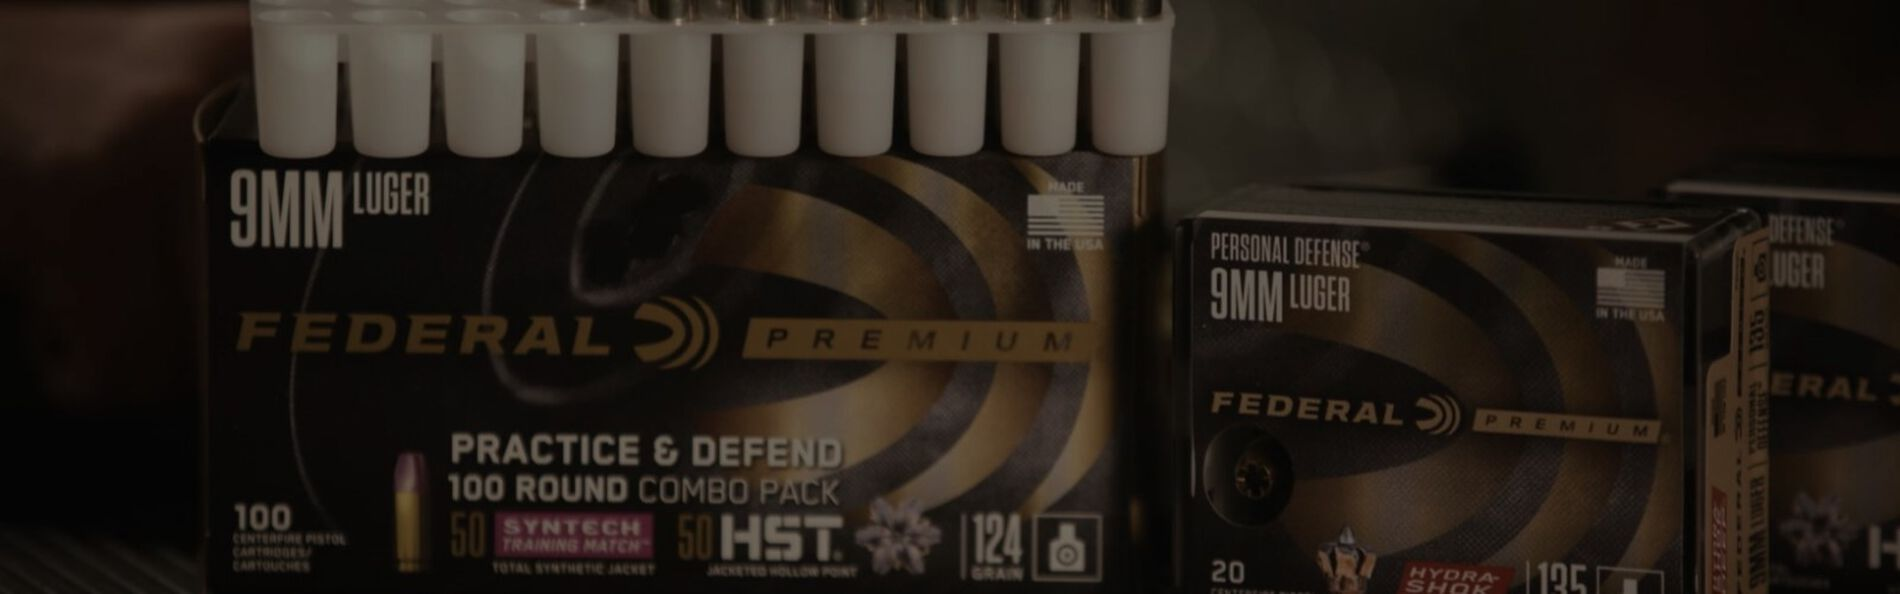 Federal Premium Ammunition packaging and cartridges